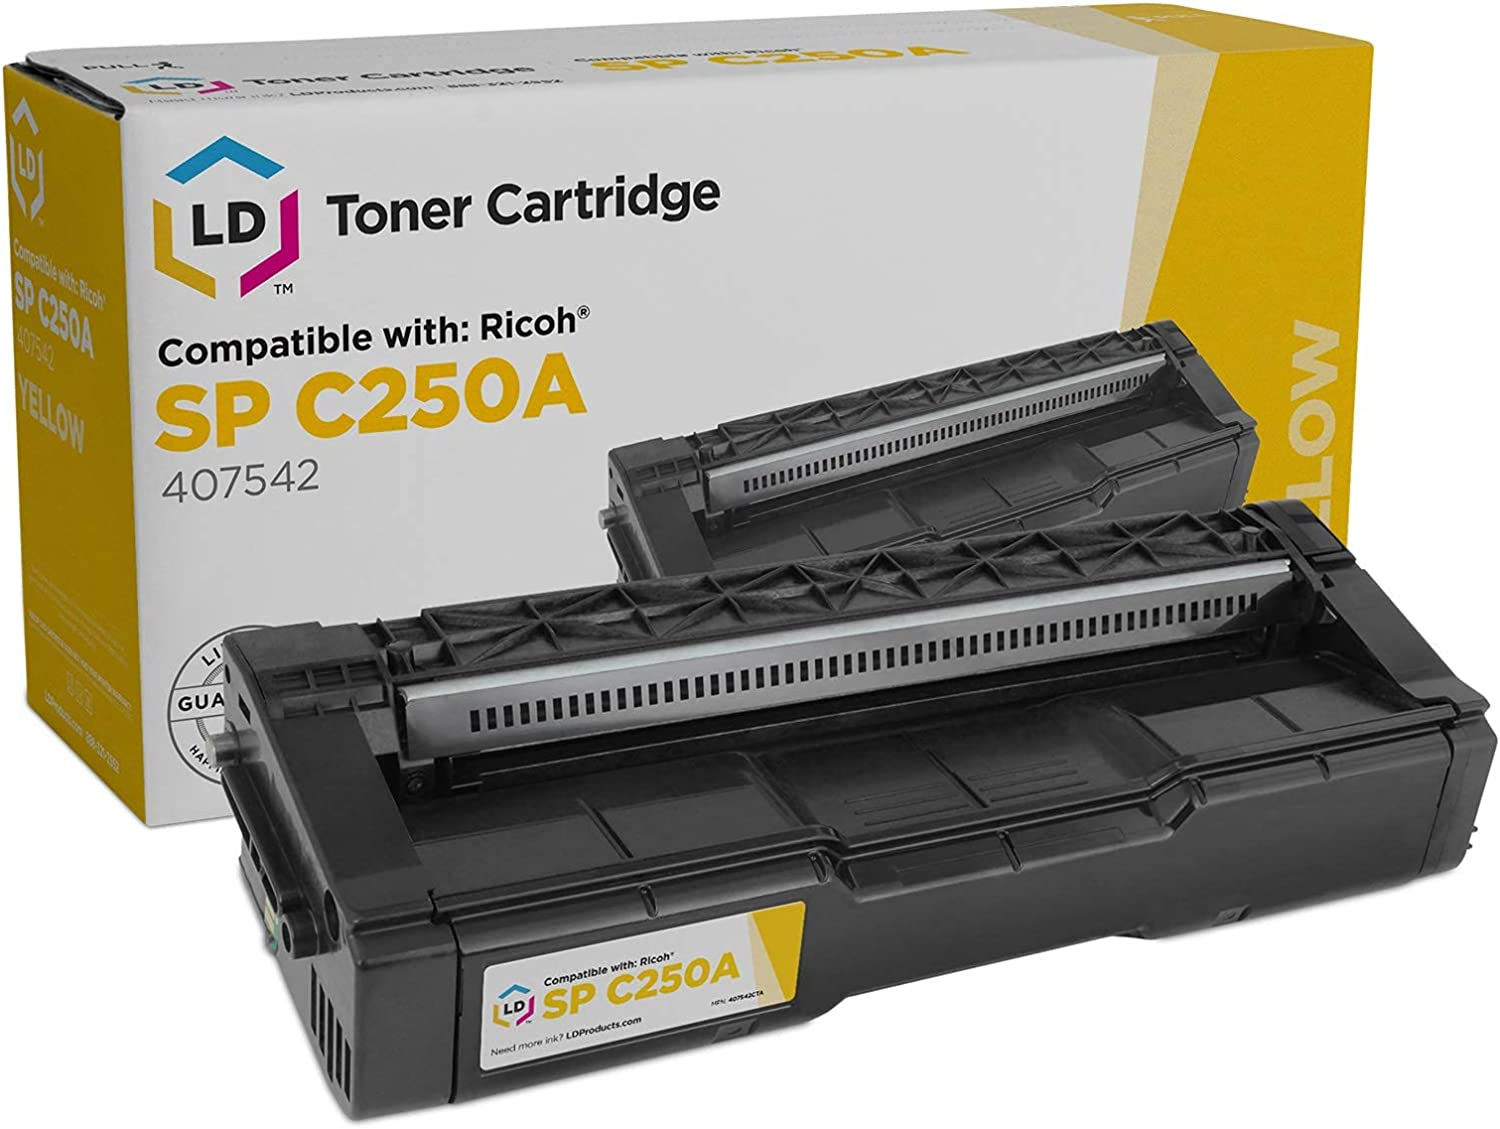 LD Compatible Toner Inventory cleanup selling sale Cartridge Replacement for C250 SP 4075 Columbus Mall Ricoh